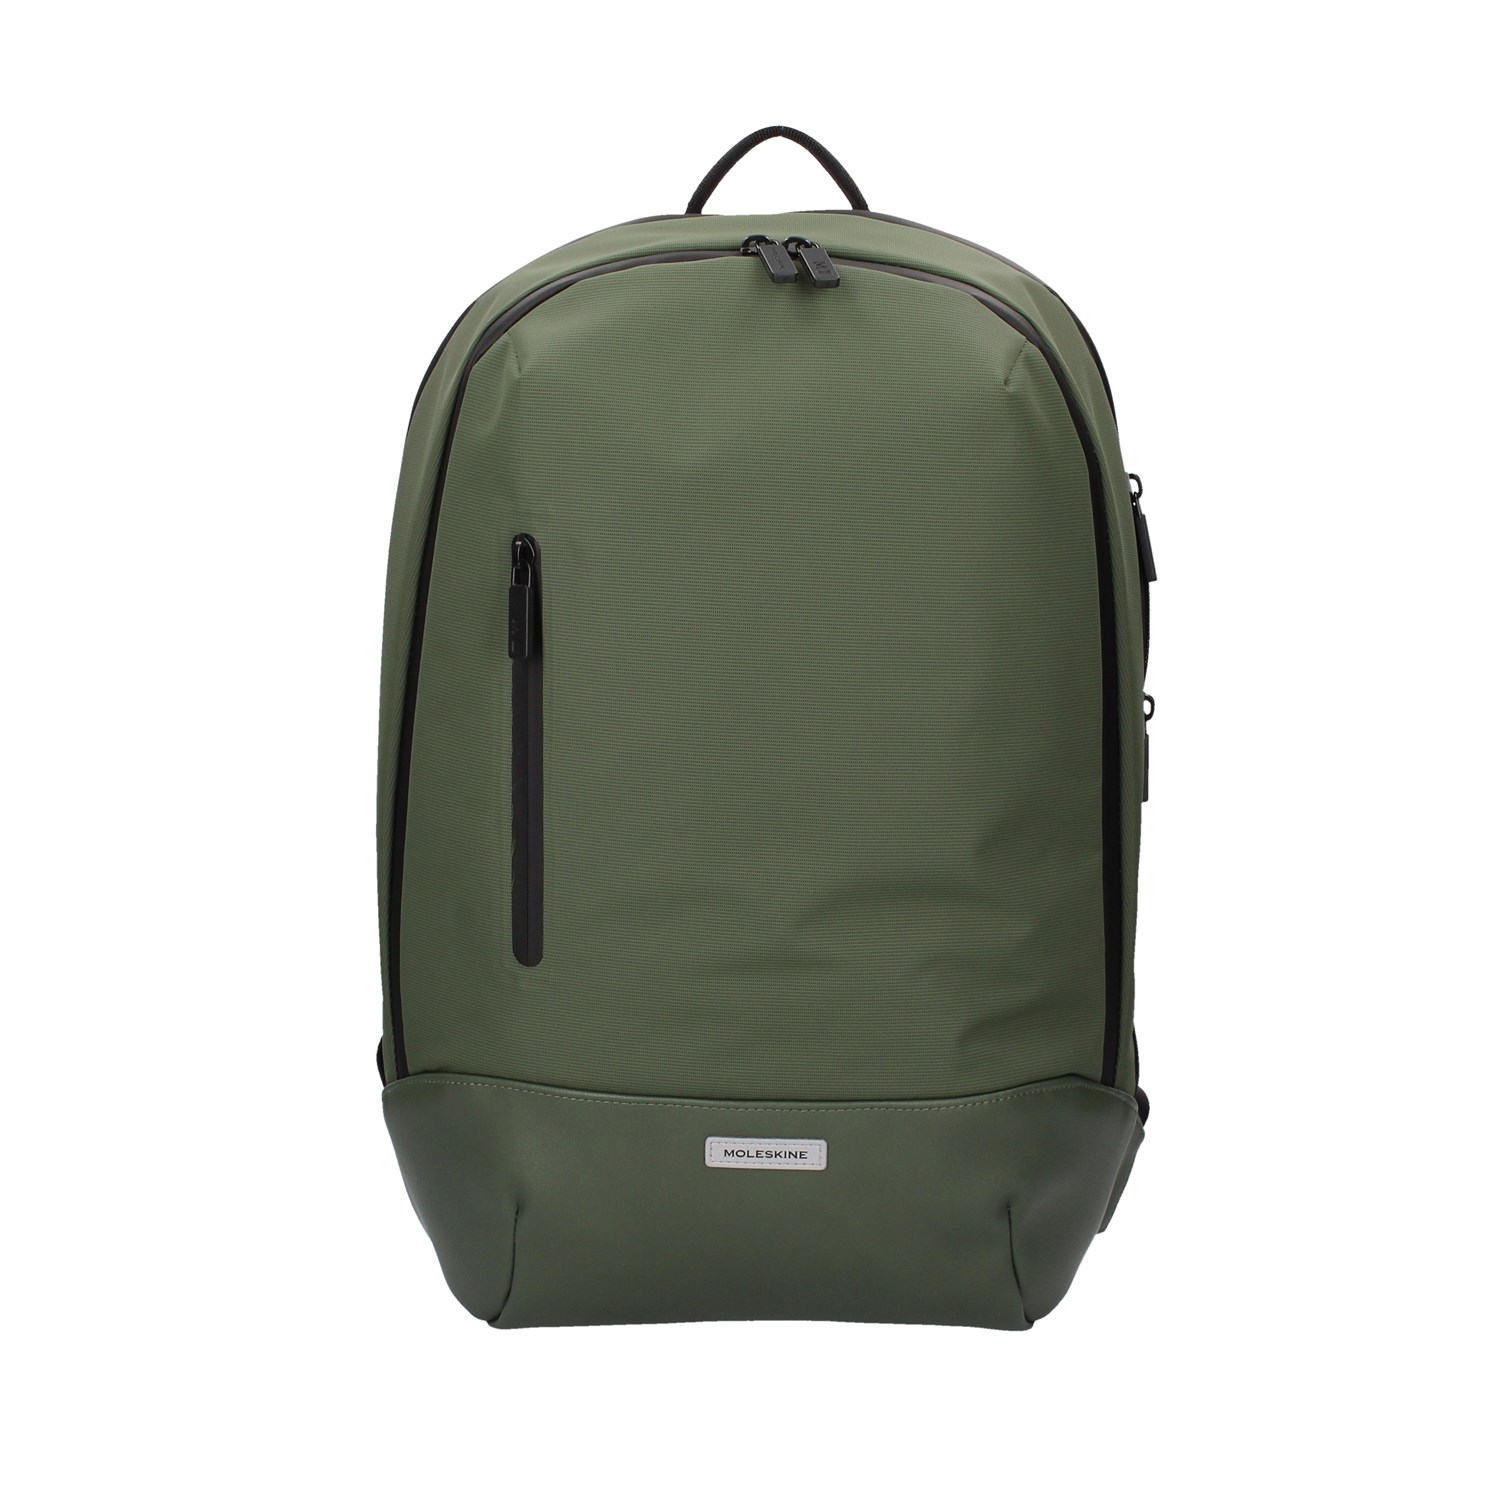 Moleskine Bags Accessories Backpacks GREEN ET926MTBK